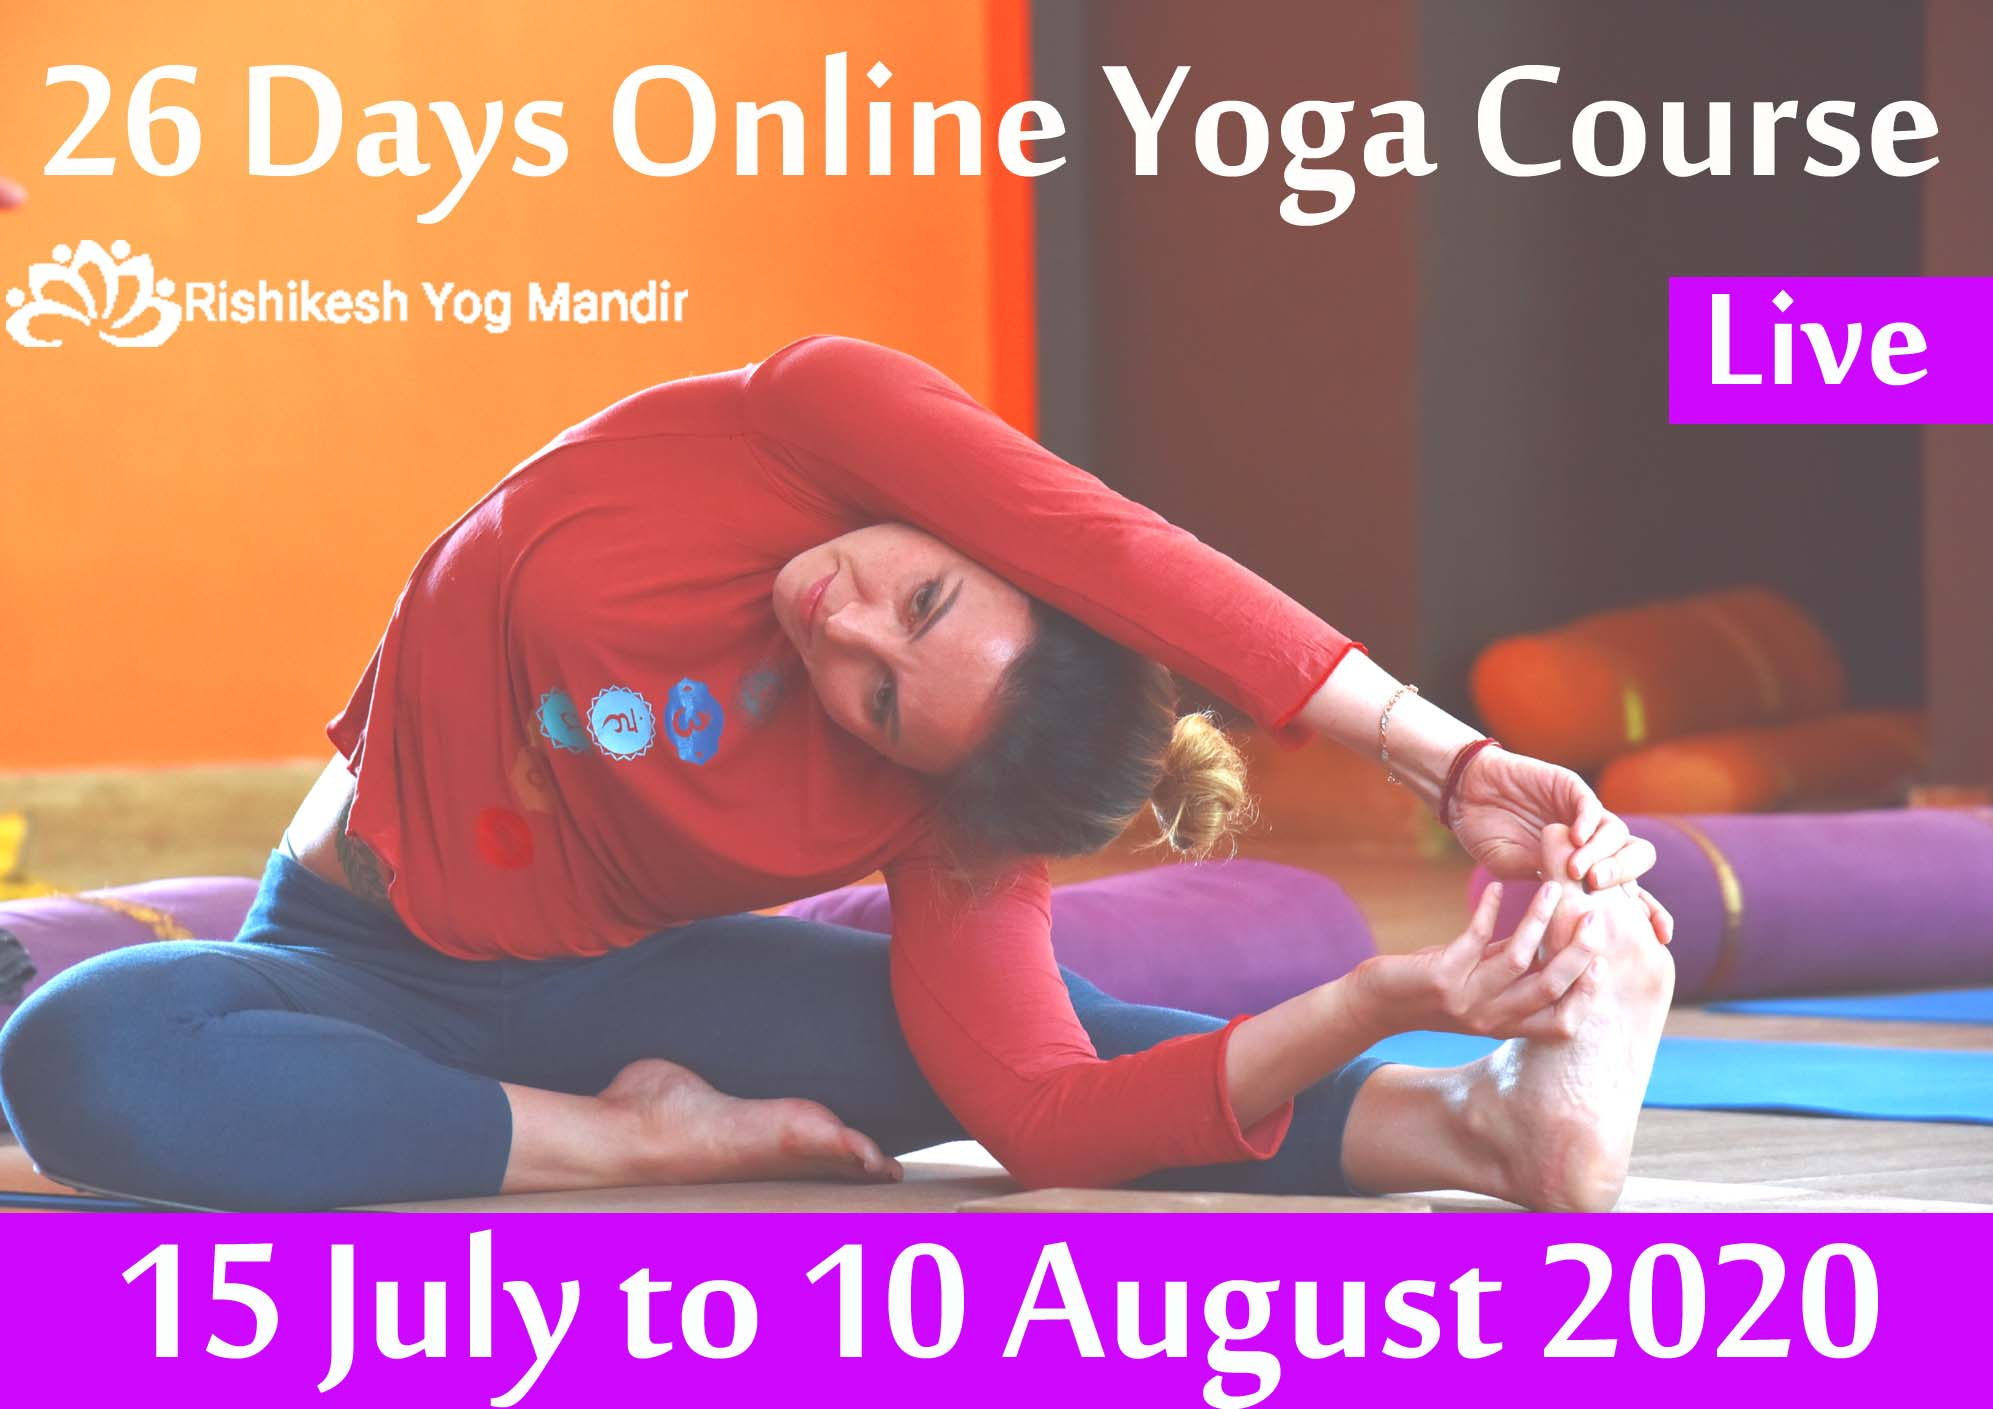 One Month Online Yoga Teacher Training Course In Rishikesh India Training Or Development Class